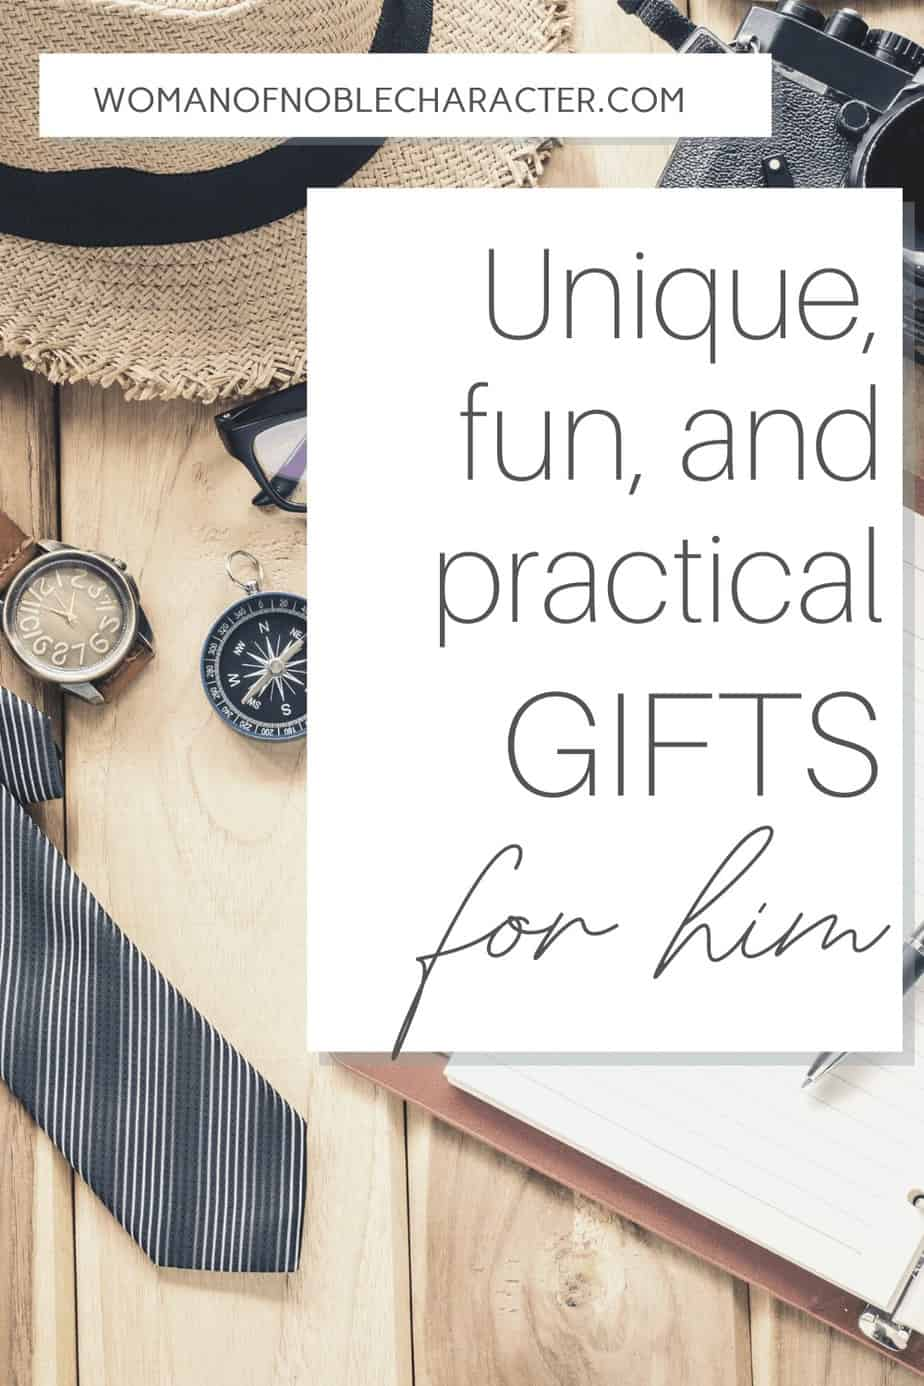 Get the best gift ideas for your significant other. Your husband will be thrilled with these presents!